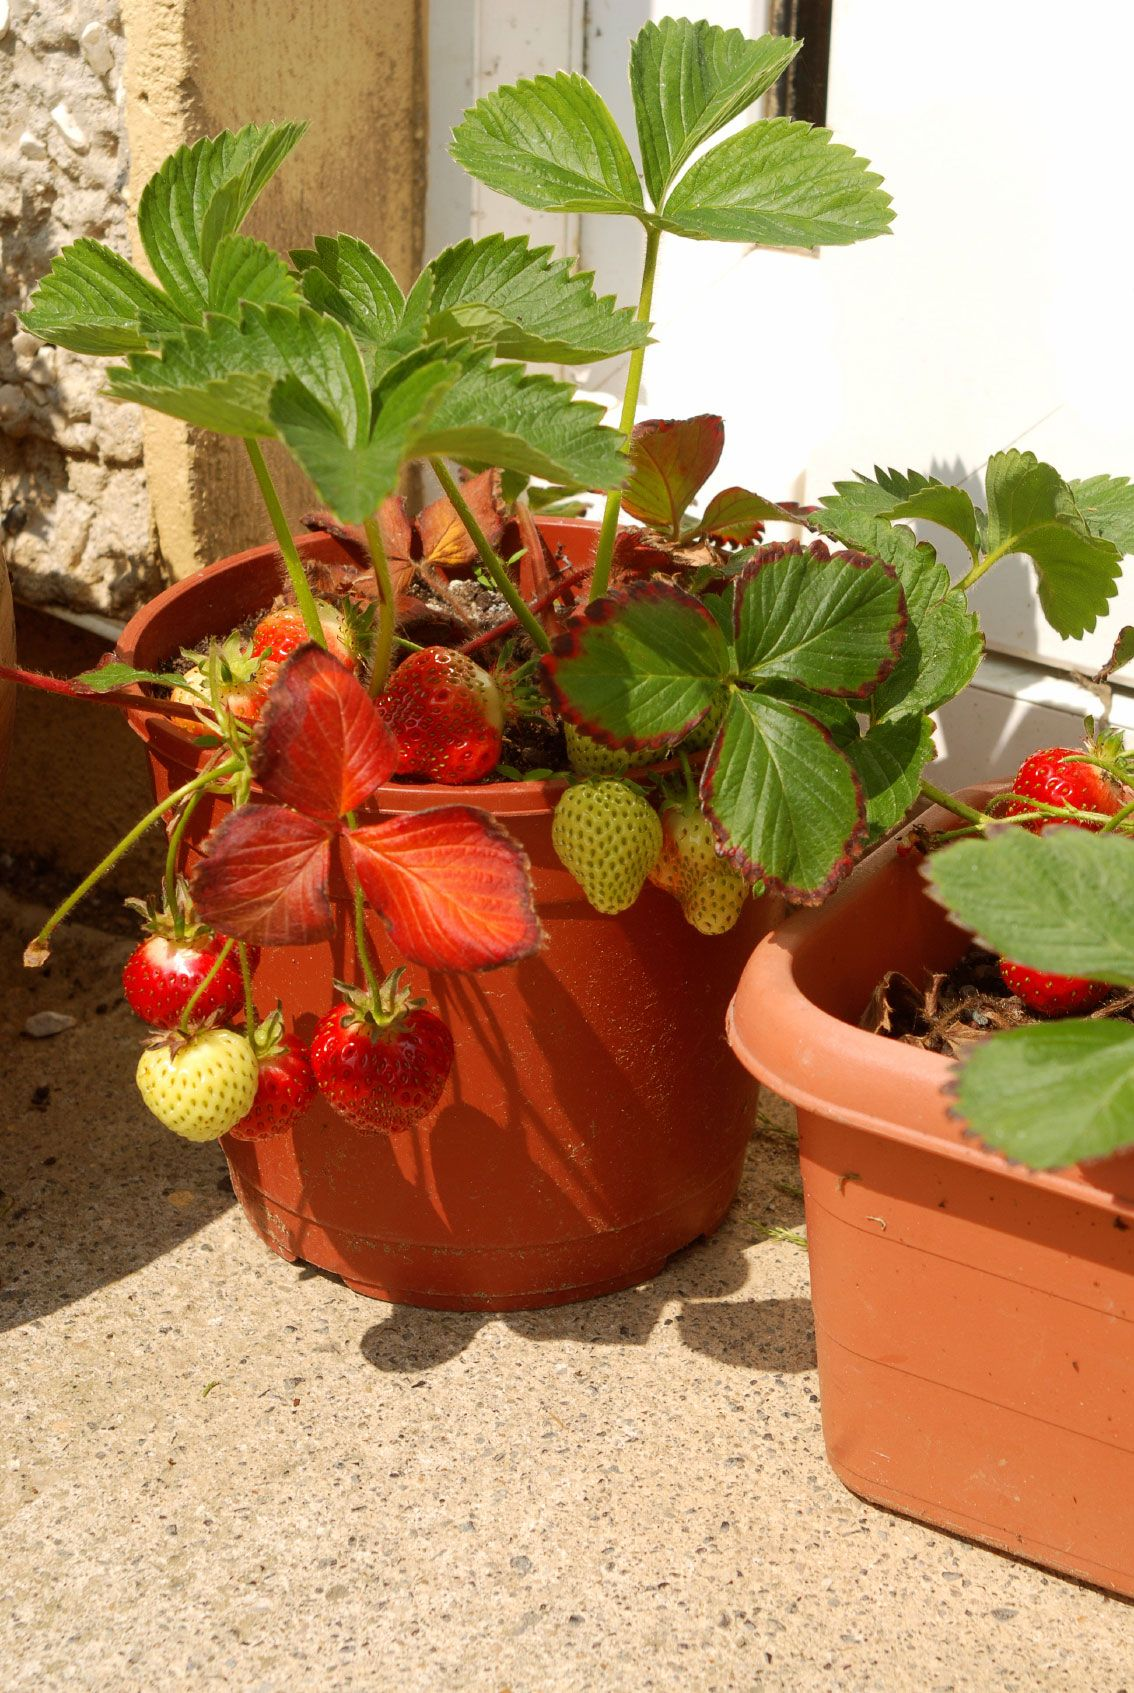 Container Gardening Strawberries – Care Of Strawberry Plants In Pots on loganberry plants, fig plants, cucumber plants, tomato plants, pomegranate plants, apricot plants, garden carrots, grape plants, pumpkin plants, garden plant protection from animals, garden cucumber, food plants, watermelon plants, blackberry plants, raspberry plants, blueberry plants, berry plants, black pepper plants, garden onion plants, almond plants,